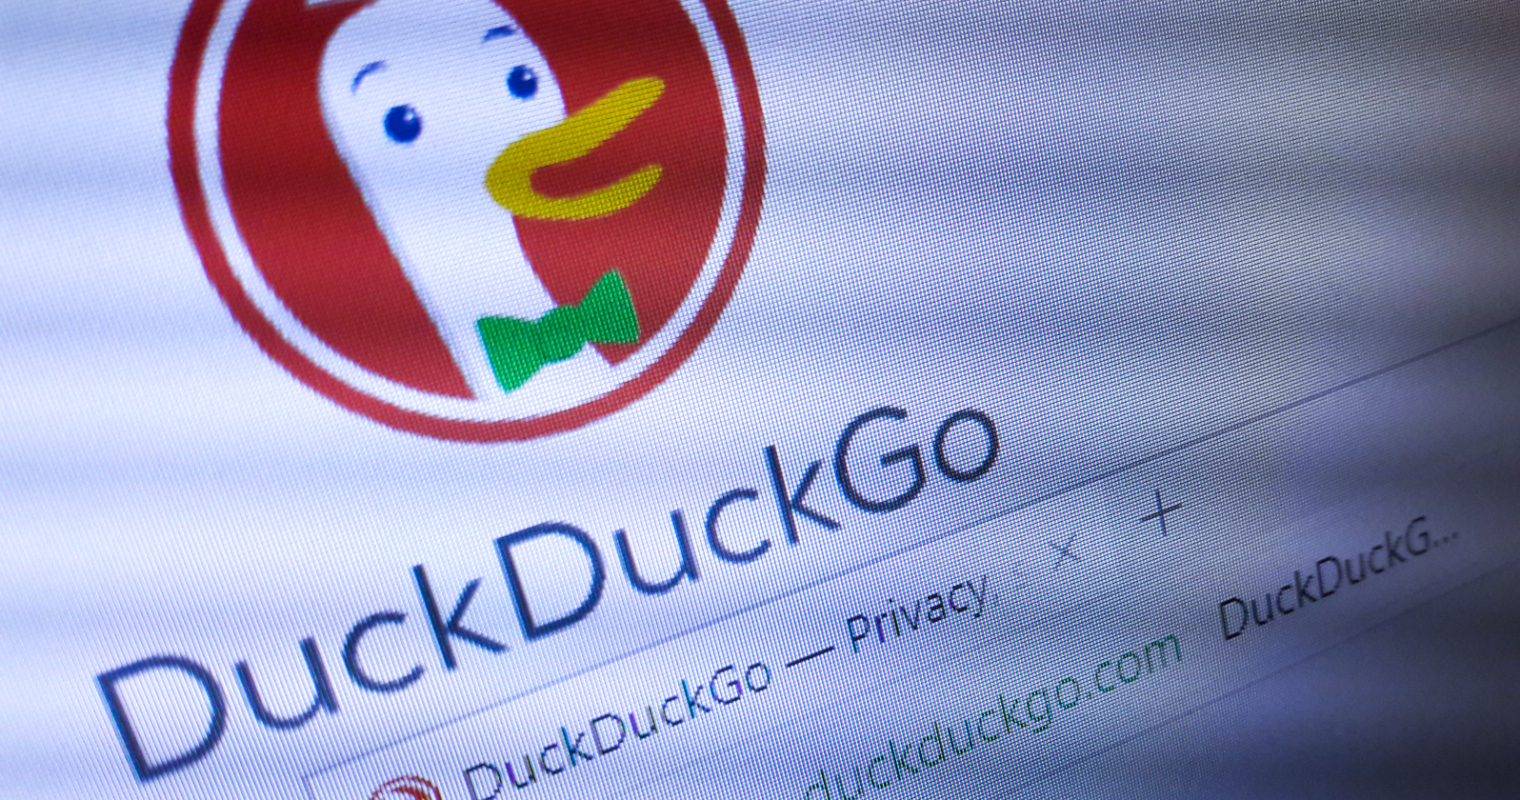 DuckDuckGo Now Handles 40 Million Searches a Day